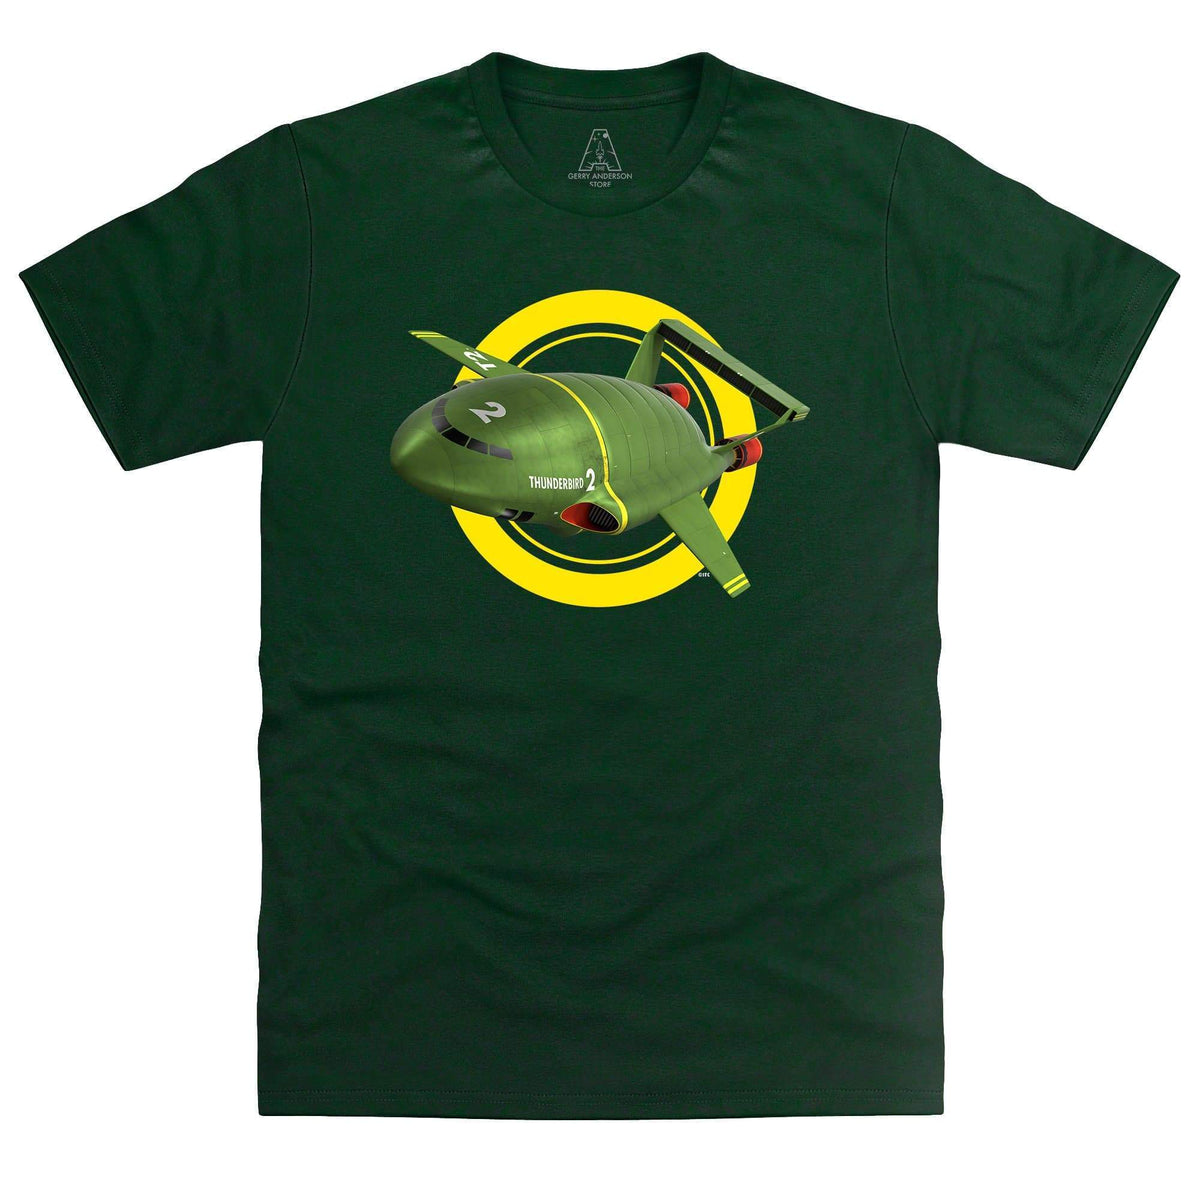 Thunderbird 2 T-Shirt [Official & Exclusive] - The Gerry Anderson Store